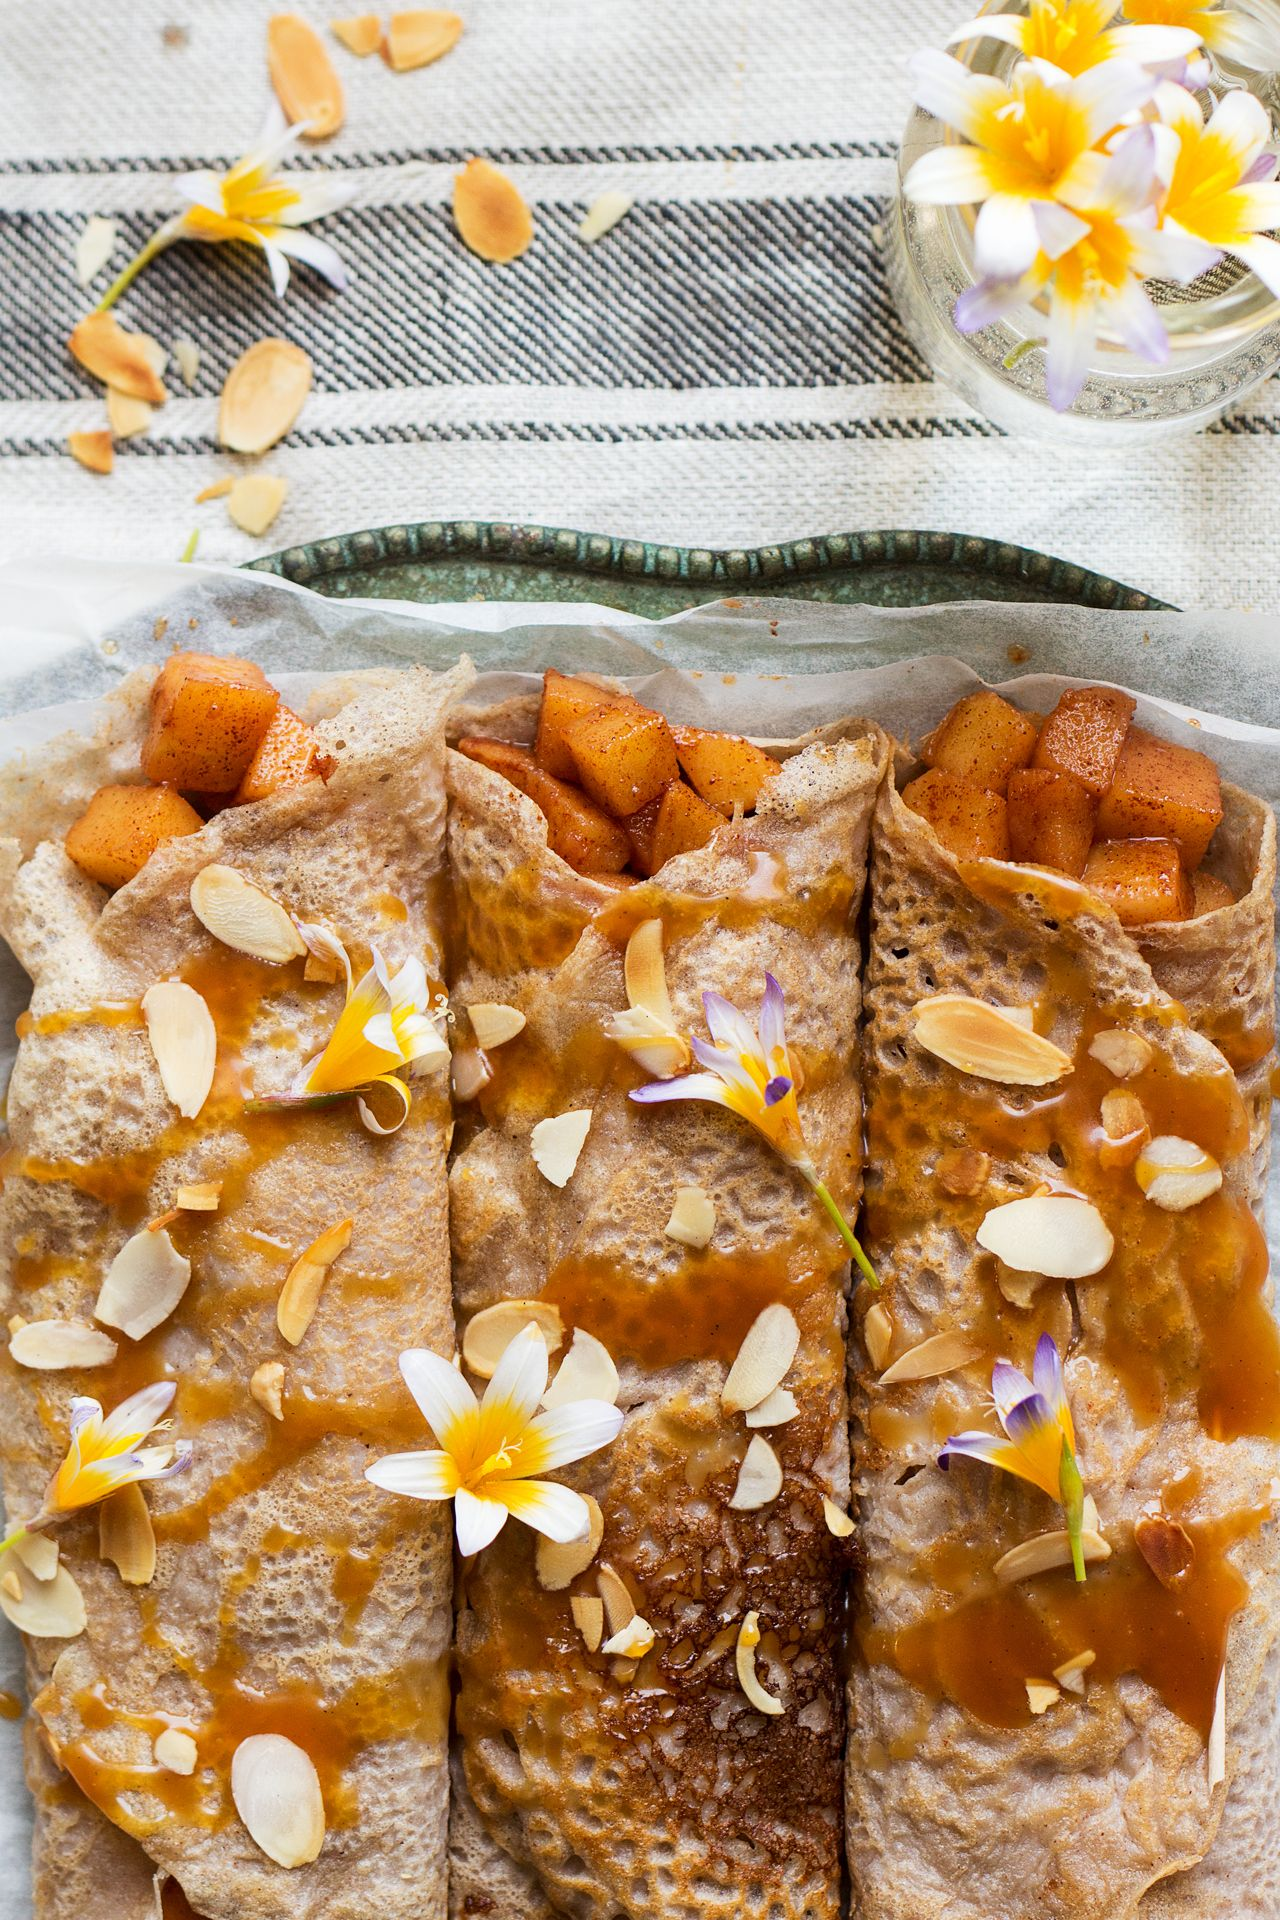 Eggless crêpes with cinnamon apples and caramel Recipe